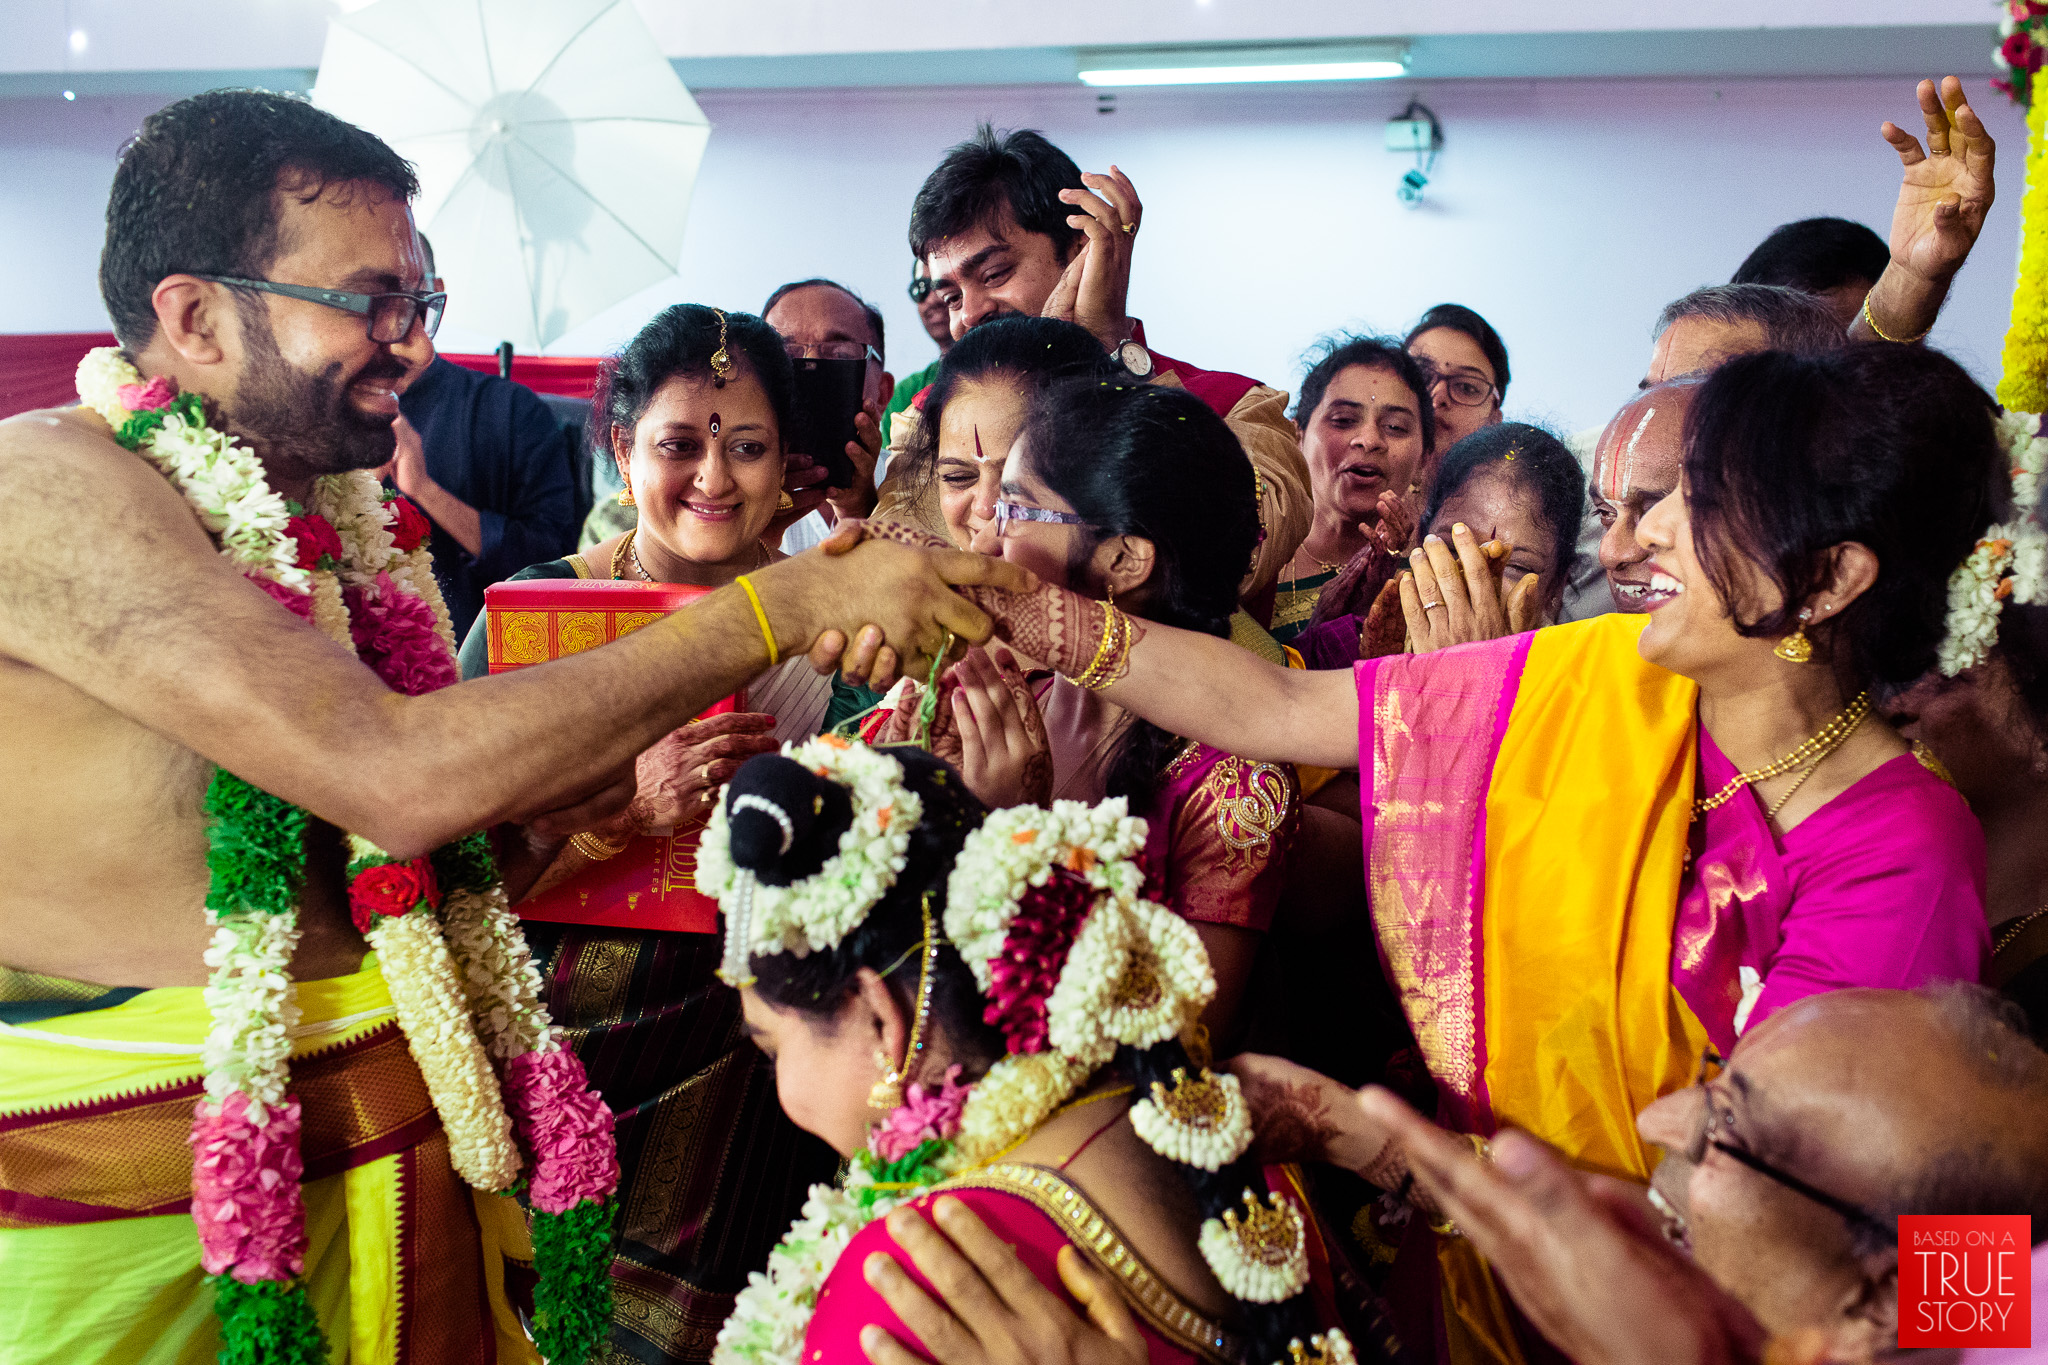 tambrahm-candid-wedding-photographer-bangalore-0041.jpg